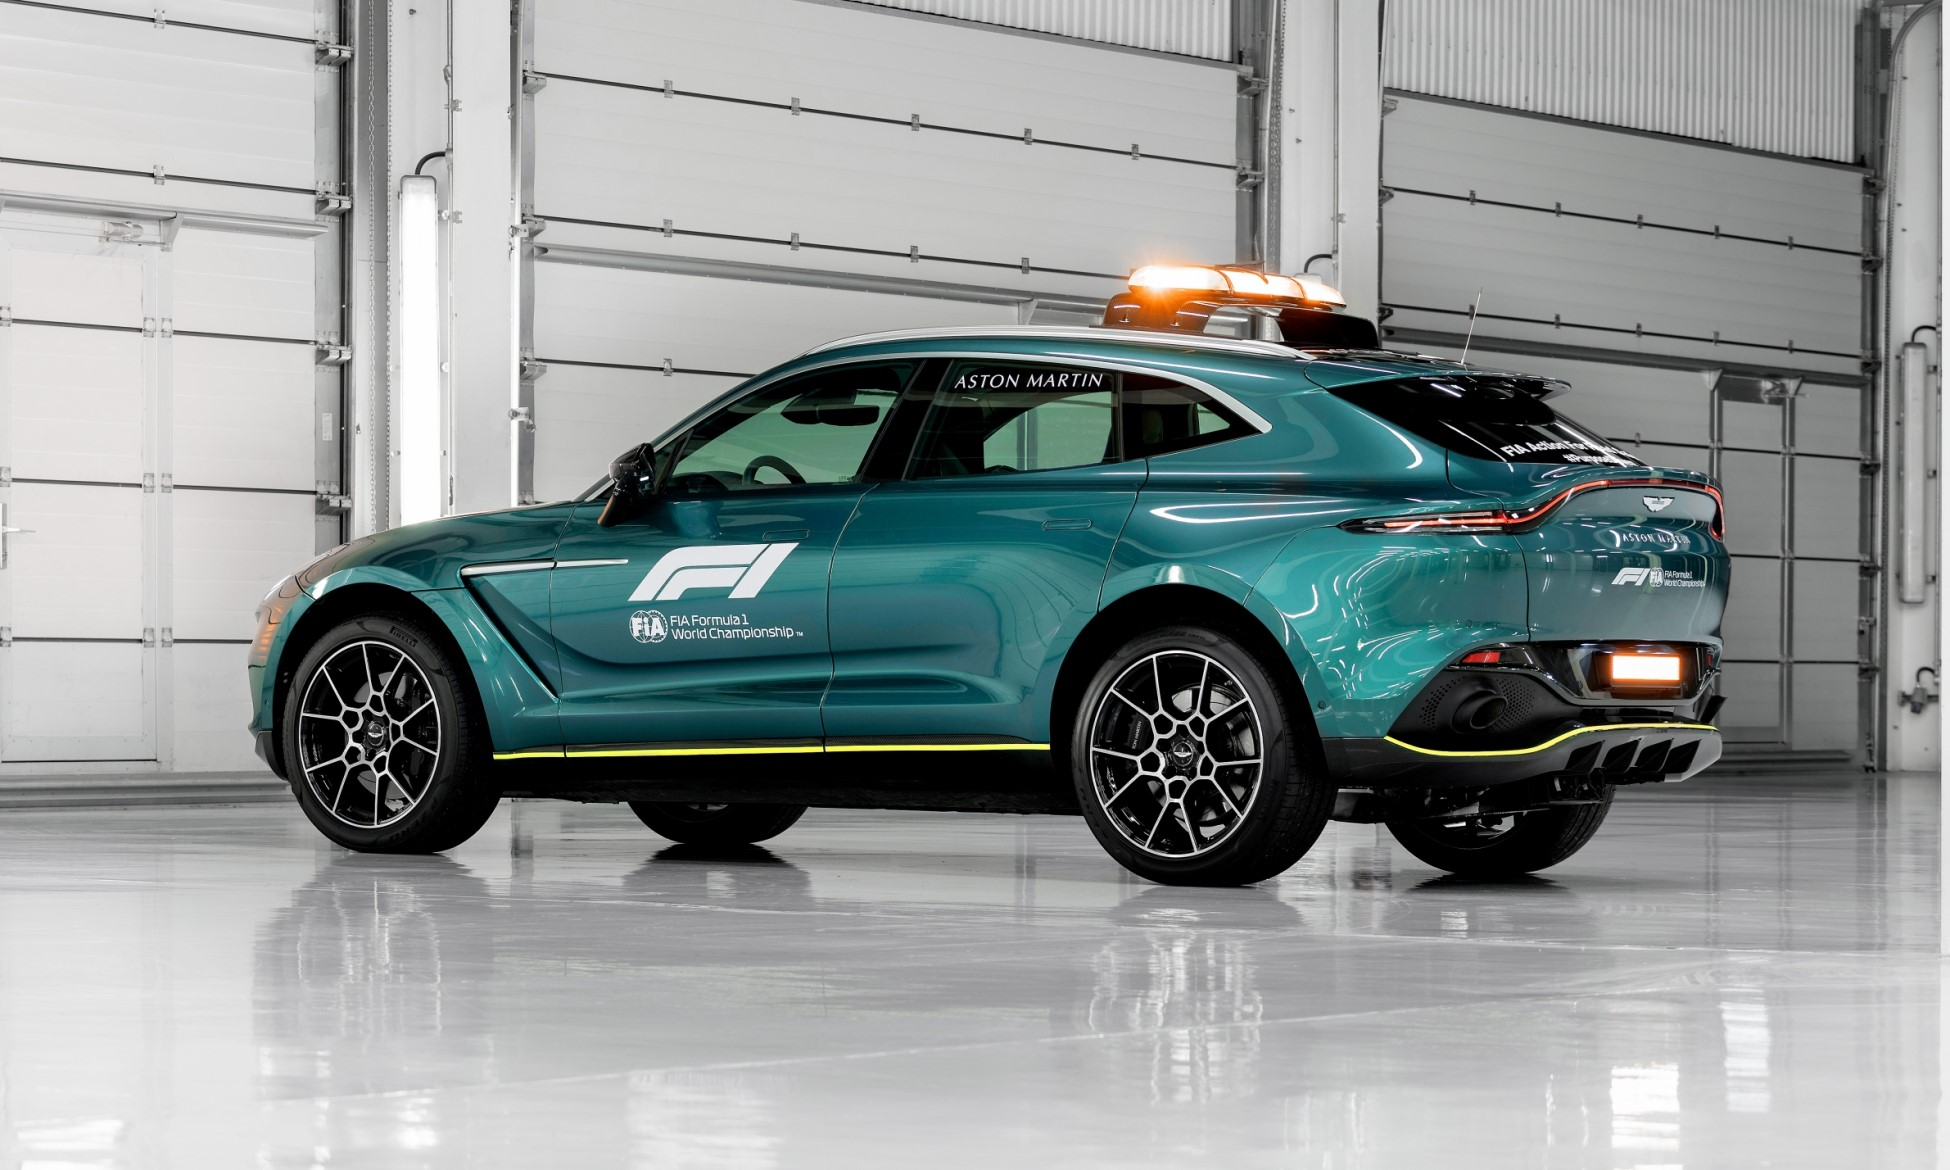 Aston Martin DBX Medical Car of Formula One